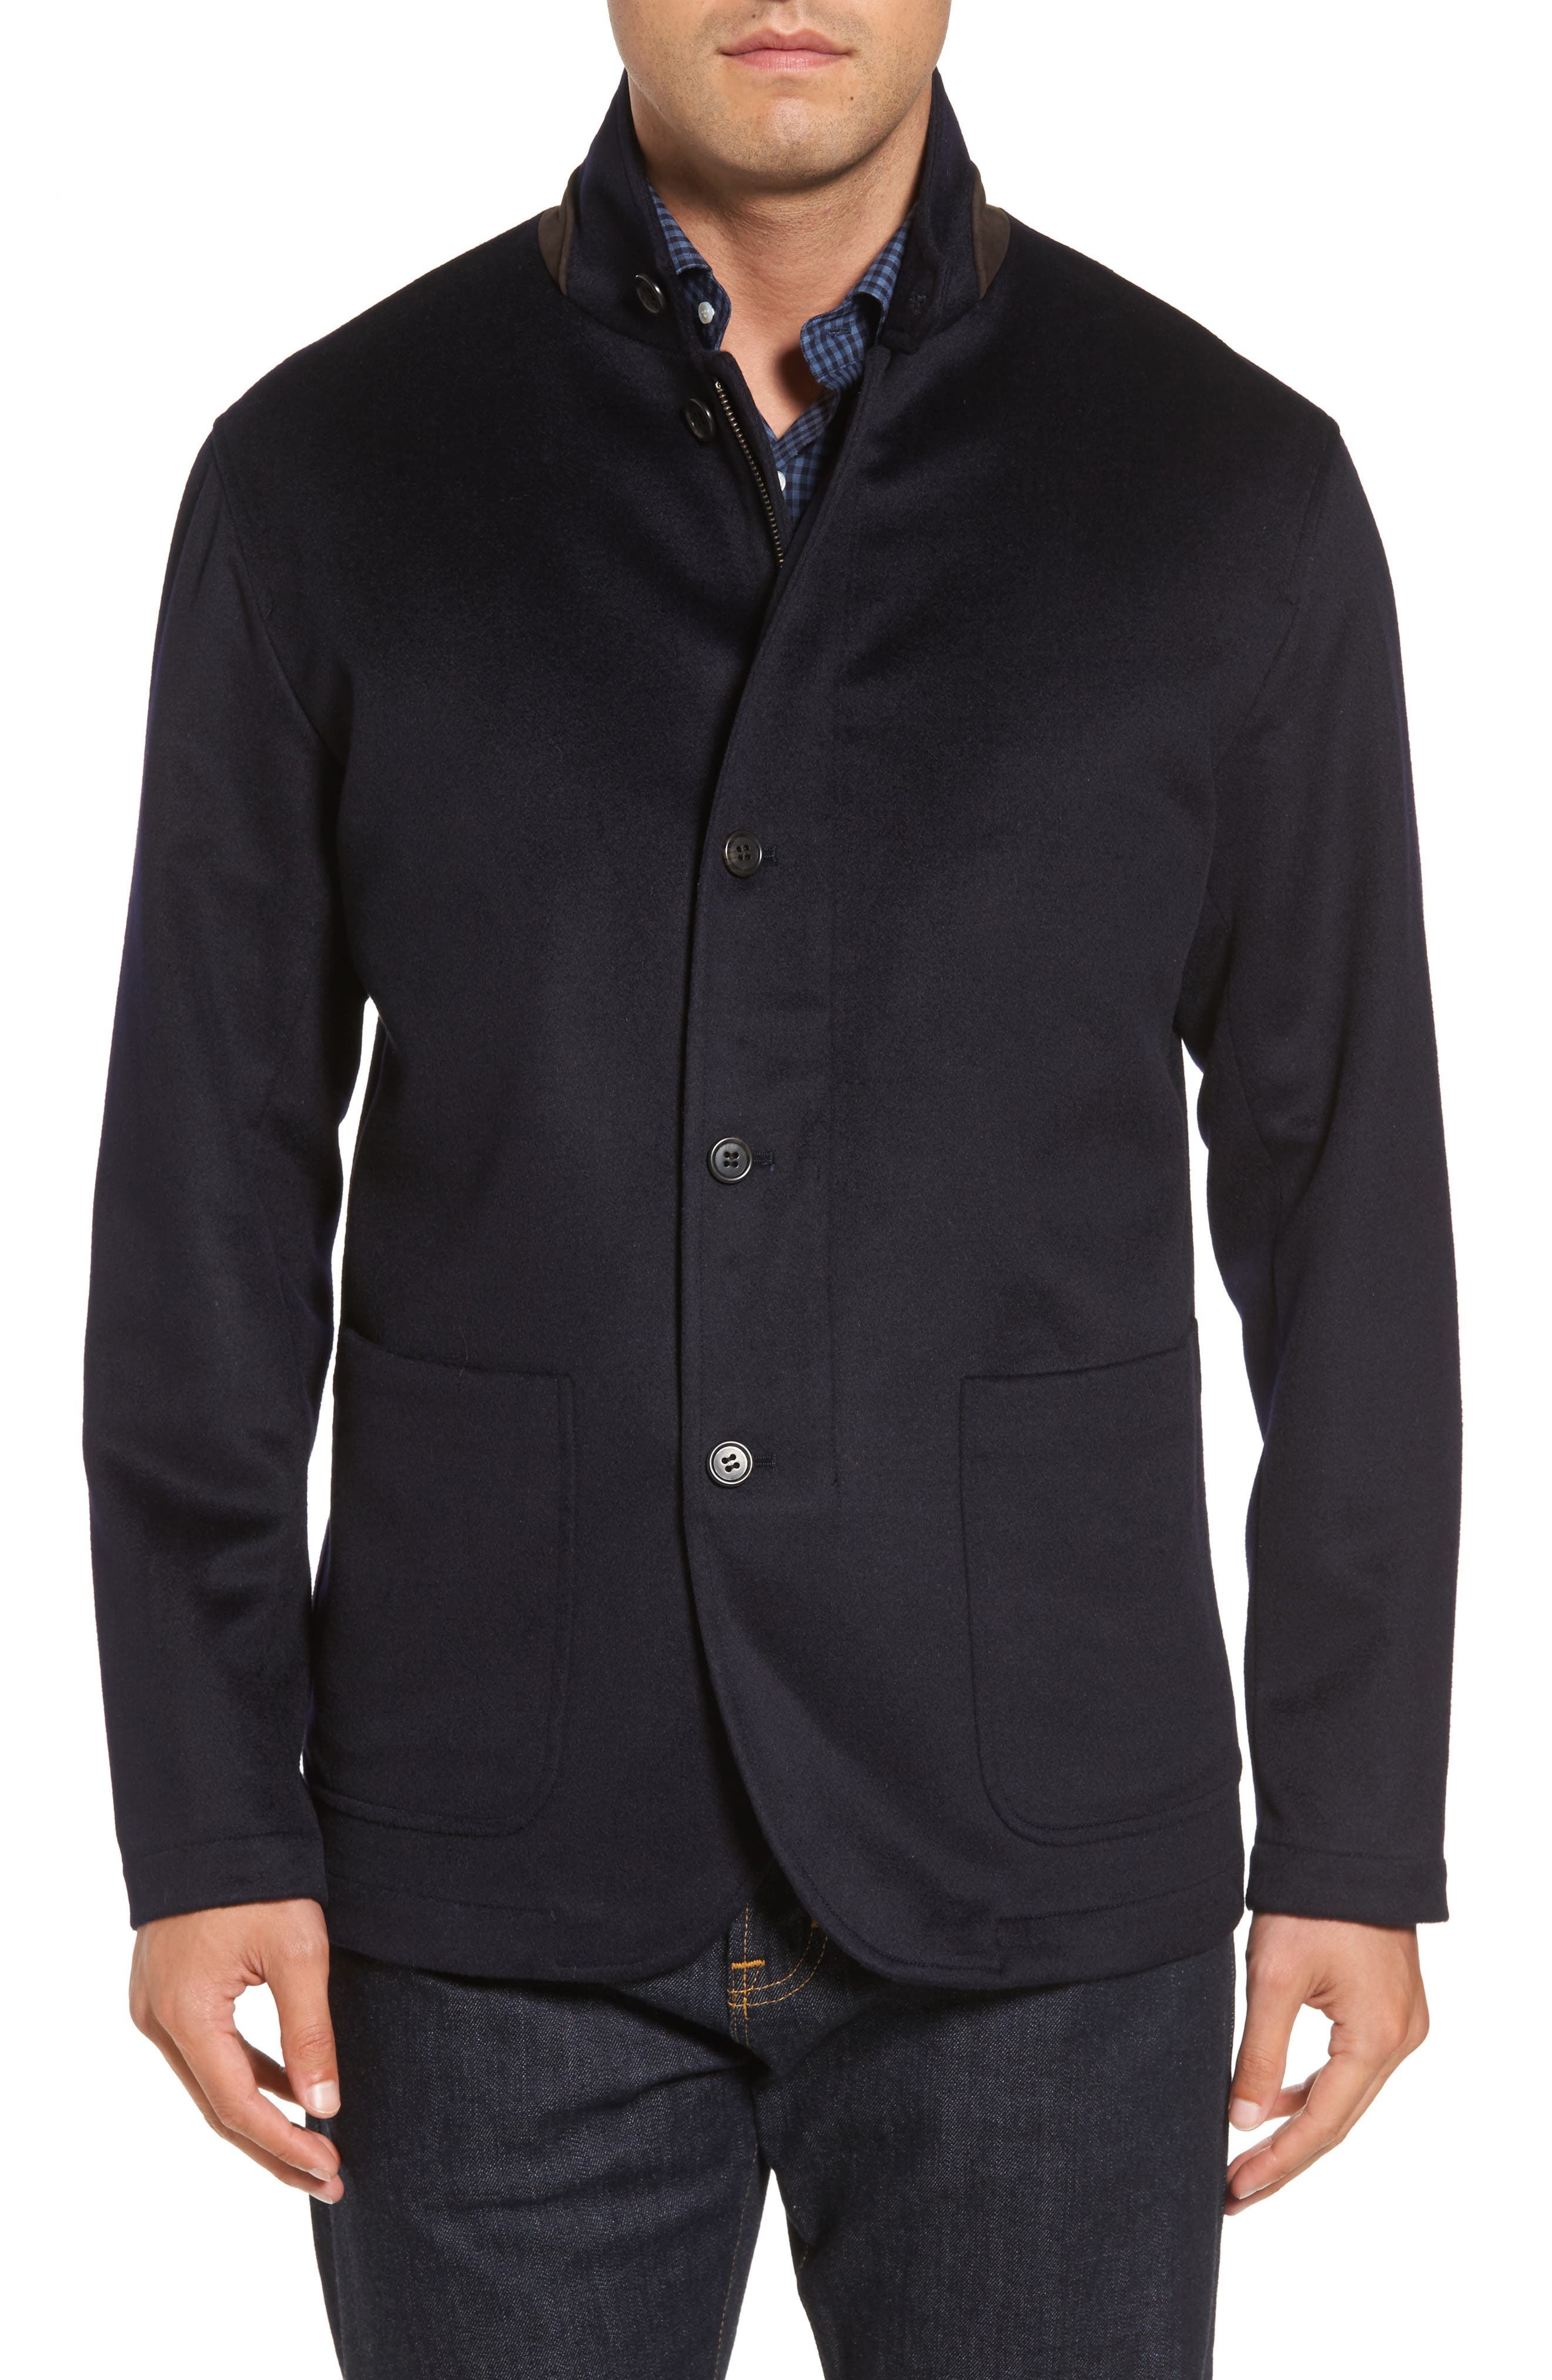 Crown Wool & Cashmere Jacket,                             Alternate thumbnail 4, color,                             Navy